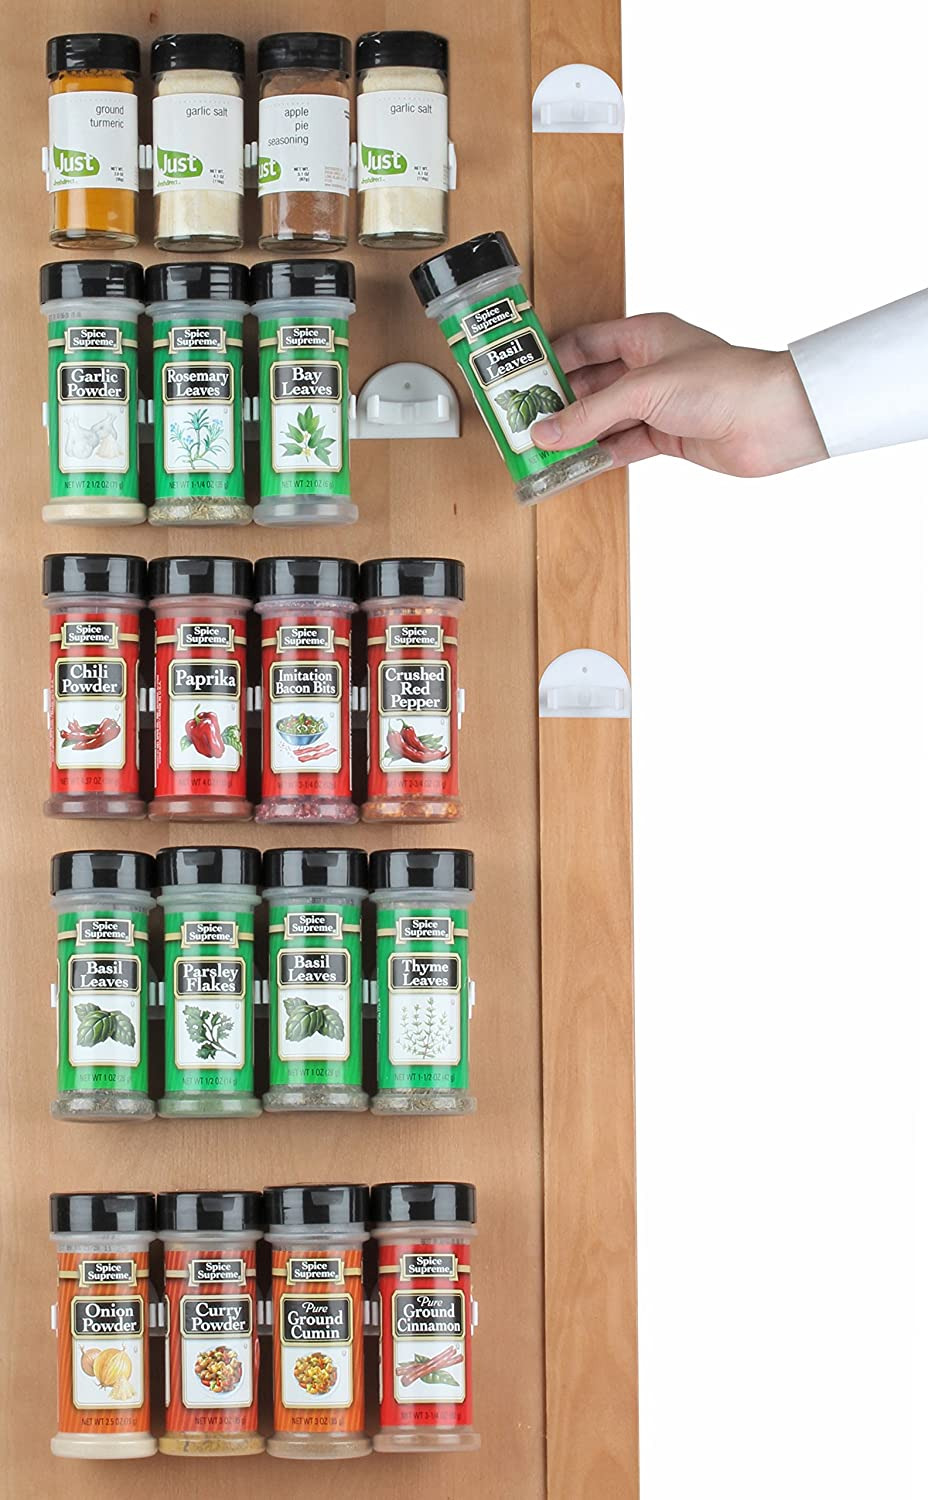 Inside Cabinet Door Spice Rack Luxury Spice Rack 36 Spice Gripper Spice Racks Strips Cabinet Cabinet Door Use Spice Clips for Spice organizer Stick or Screw Spice Storage Spice Clips